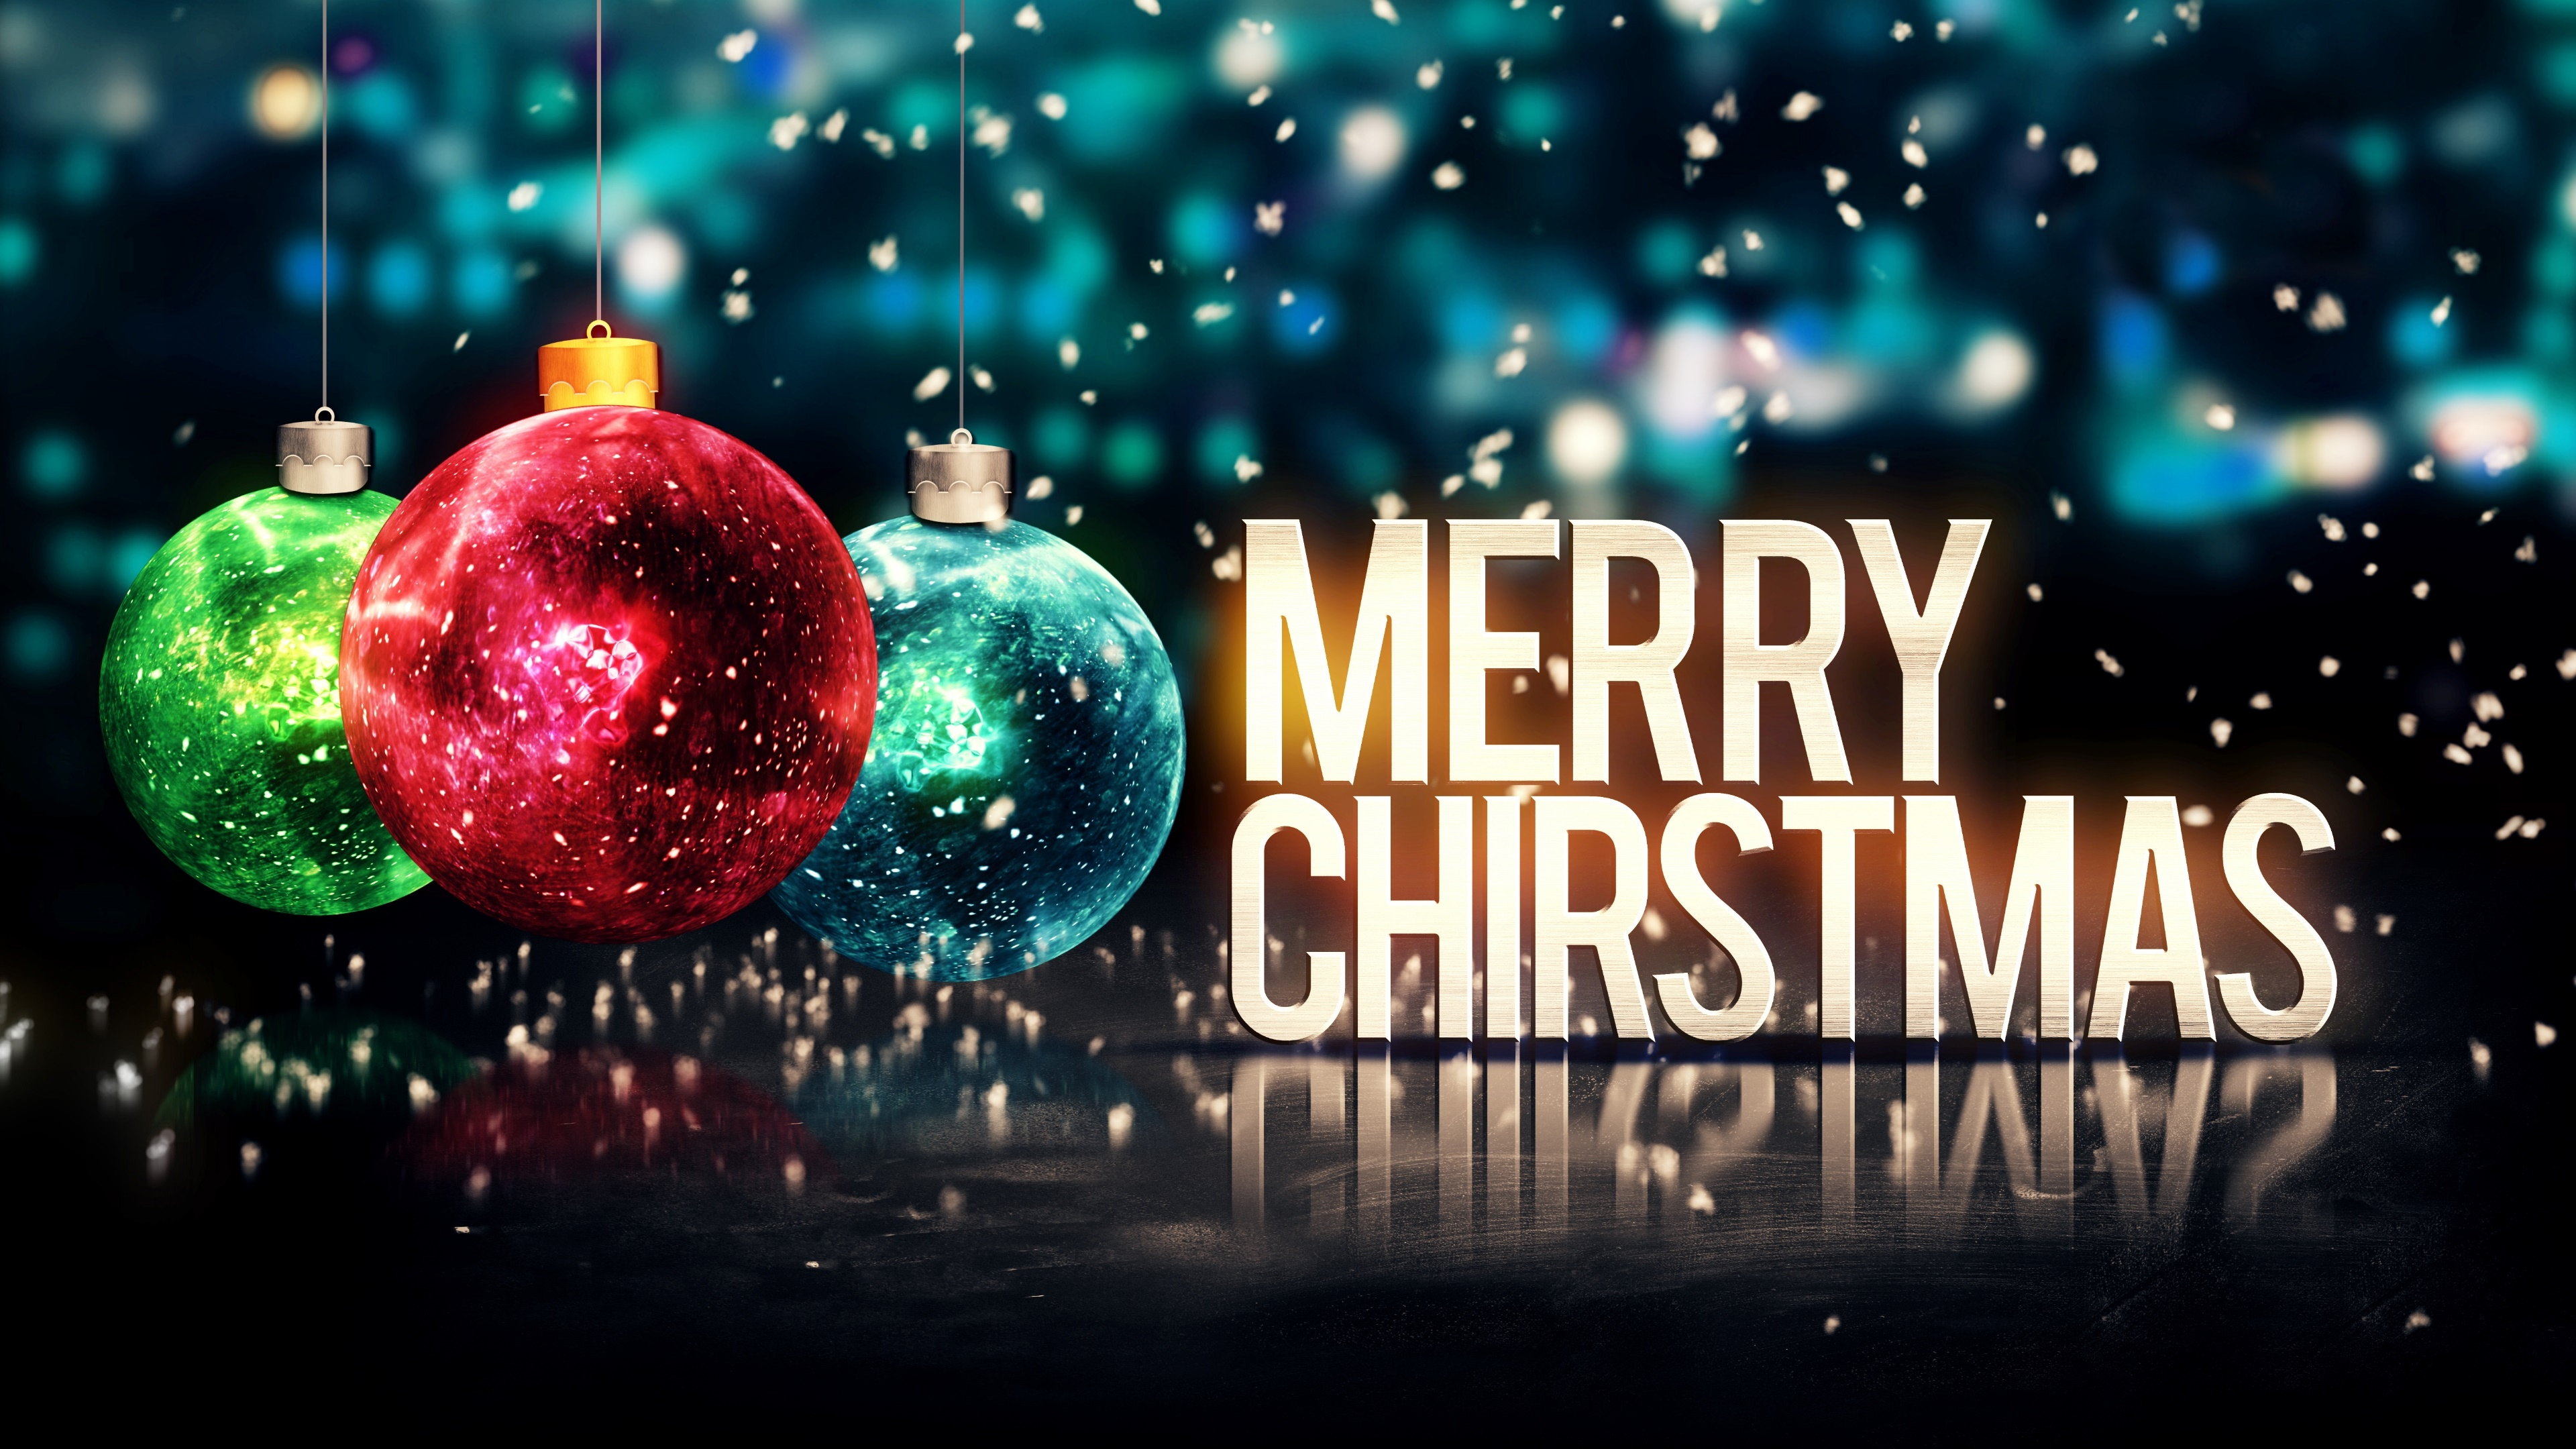 Top 10 best merry Christmas HD wallpapers - The Indian Wire